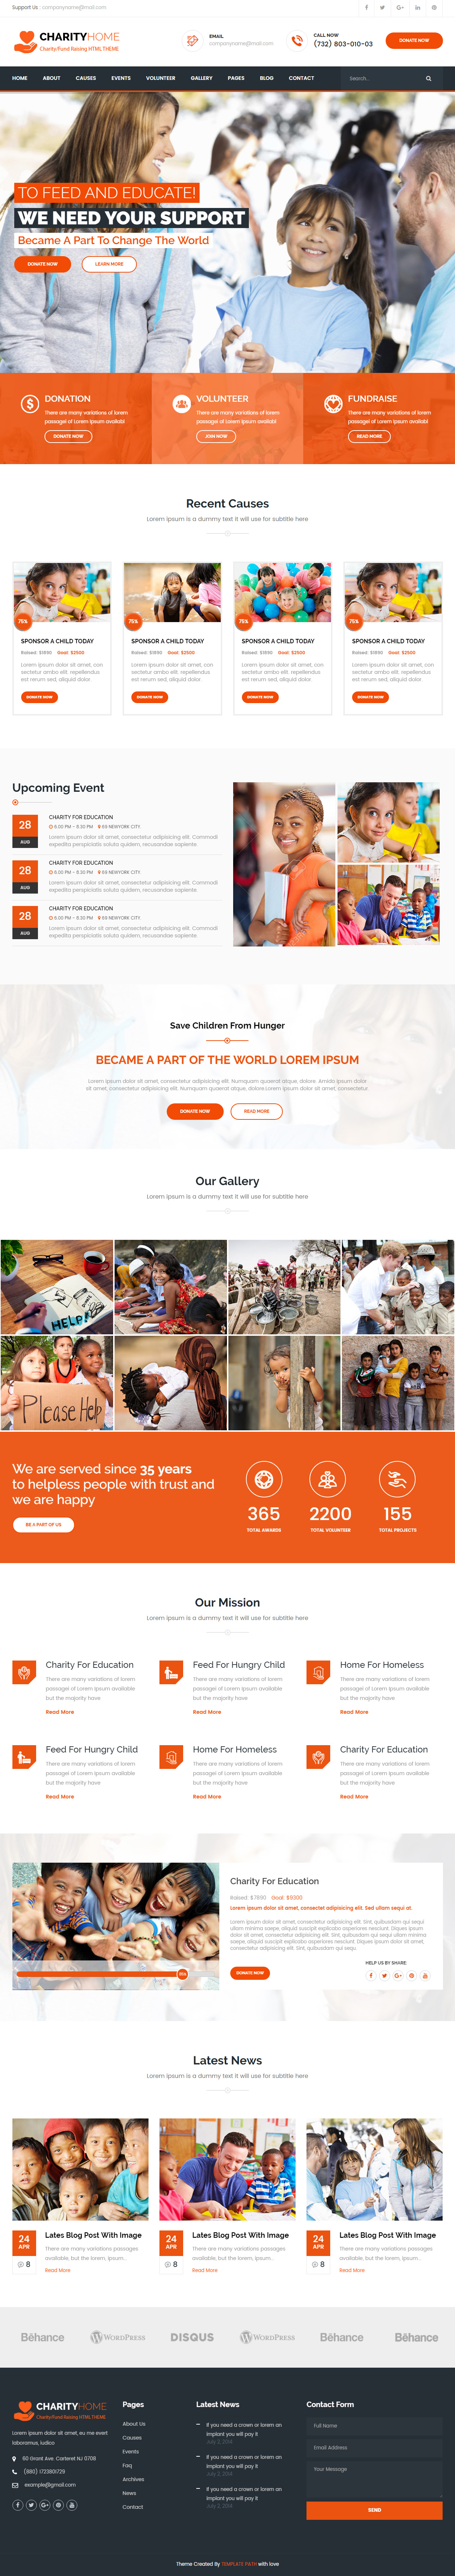 Charity Home Is Premium Full Responsive Parallax Html5 Retina Template Bootstrap